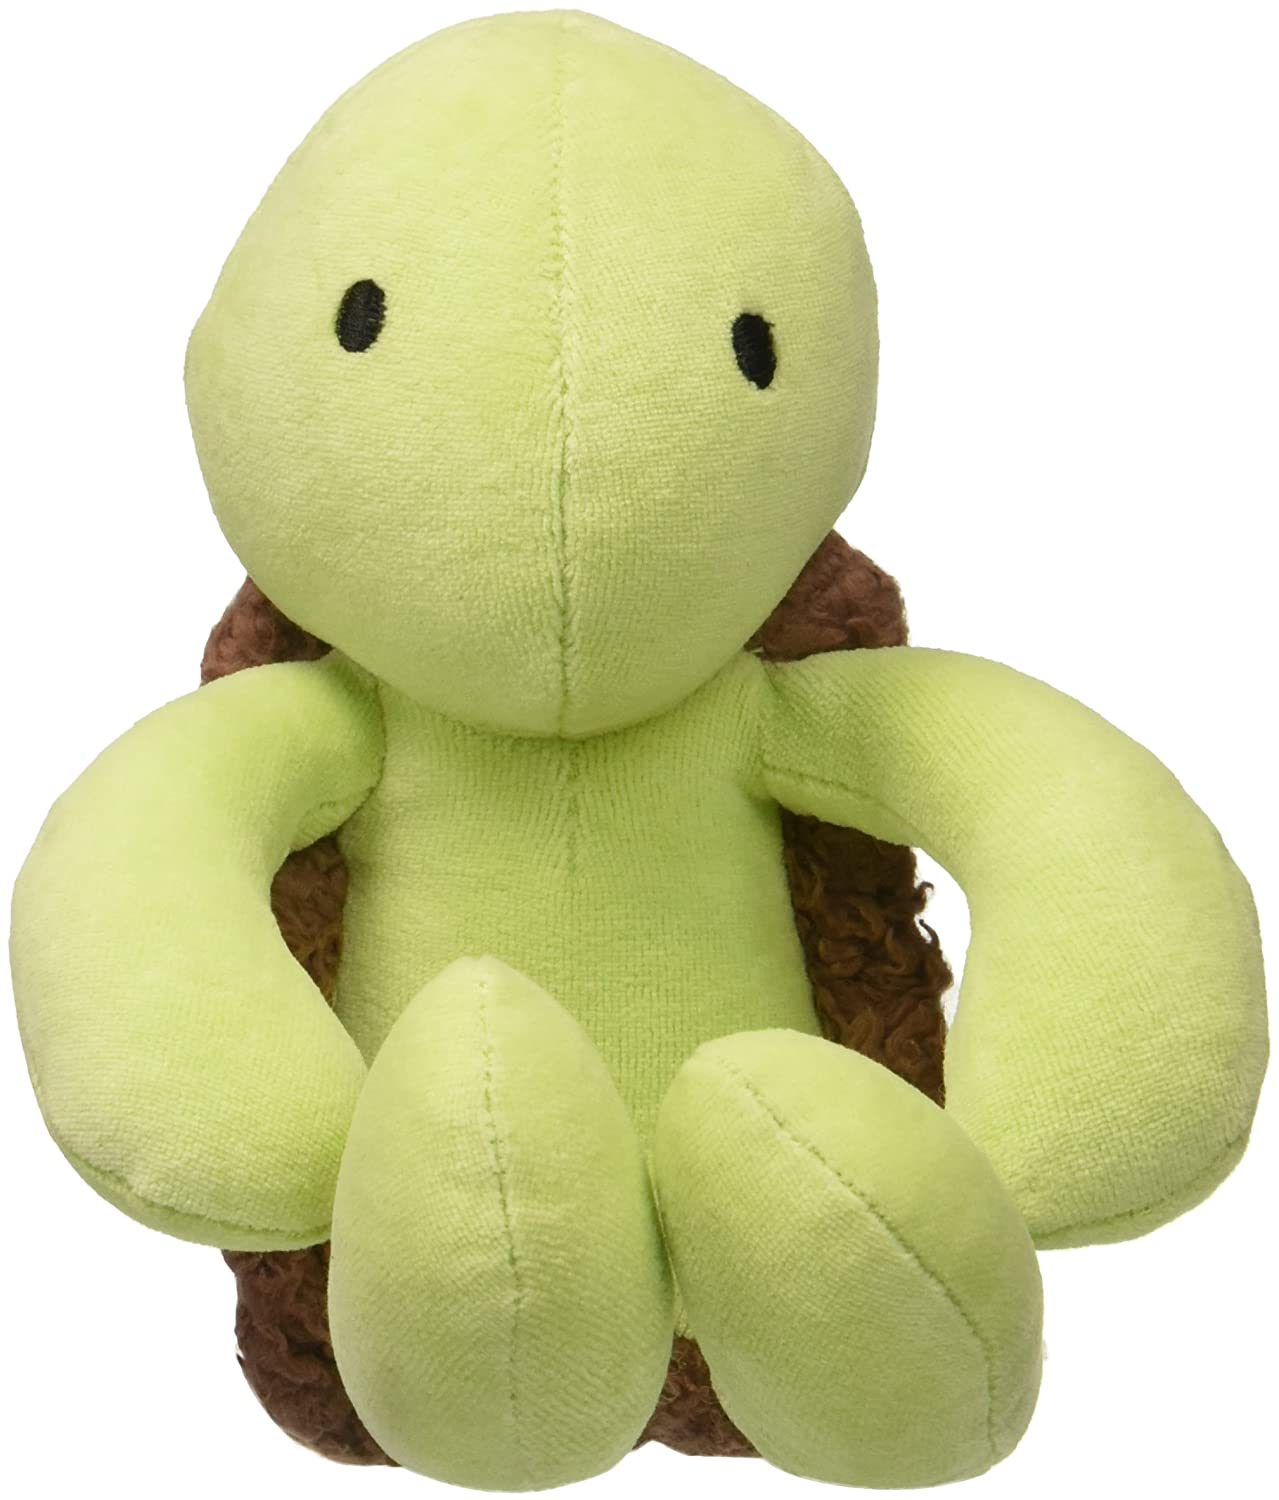 Bears for Humanity Organic Turtle Animal Pals Plush Toy, Green, 12